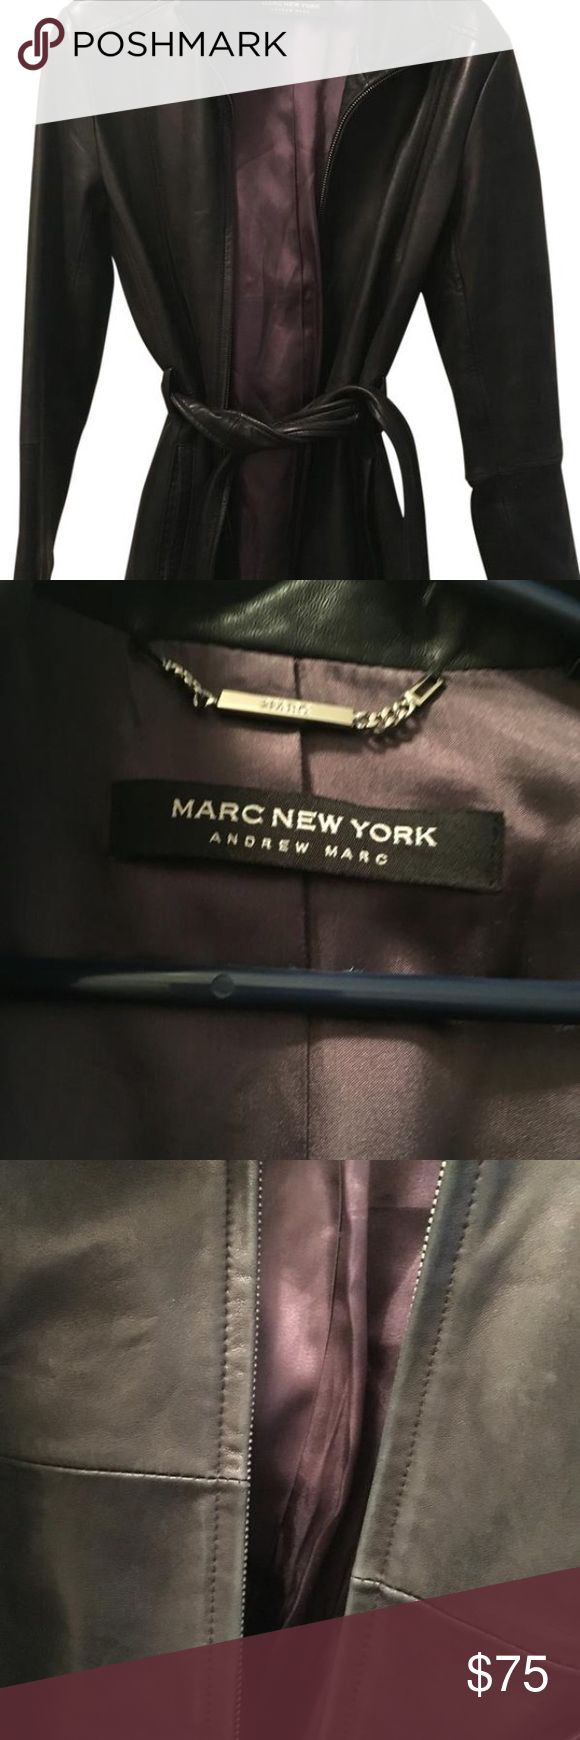 Marc New York Andrew Marc Leather Coat Real leather. No rips from a pet and smoke free home some leather fading/discoloration throughout the jacket. Please note the low price for such a great jacket is because of fading/discolorations throughout- see pictures Can last for many more uses!!!! Great piece! marc new york andrew marc Jackets & Coats